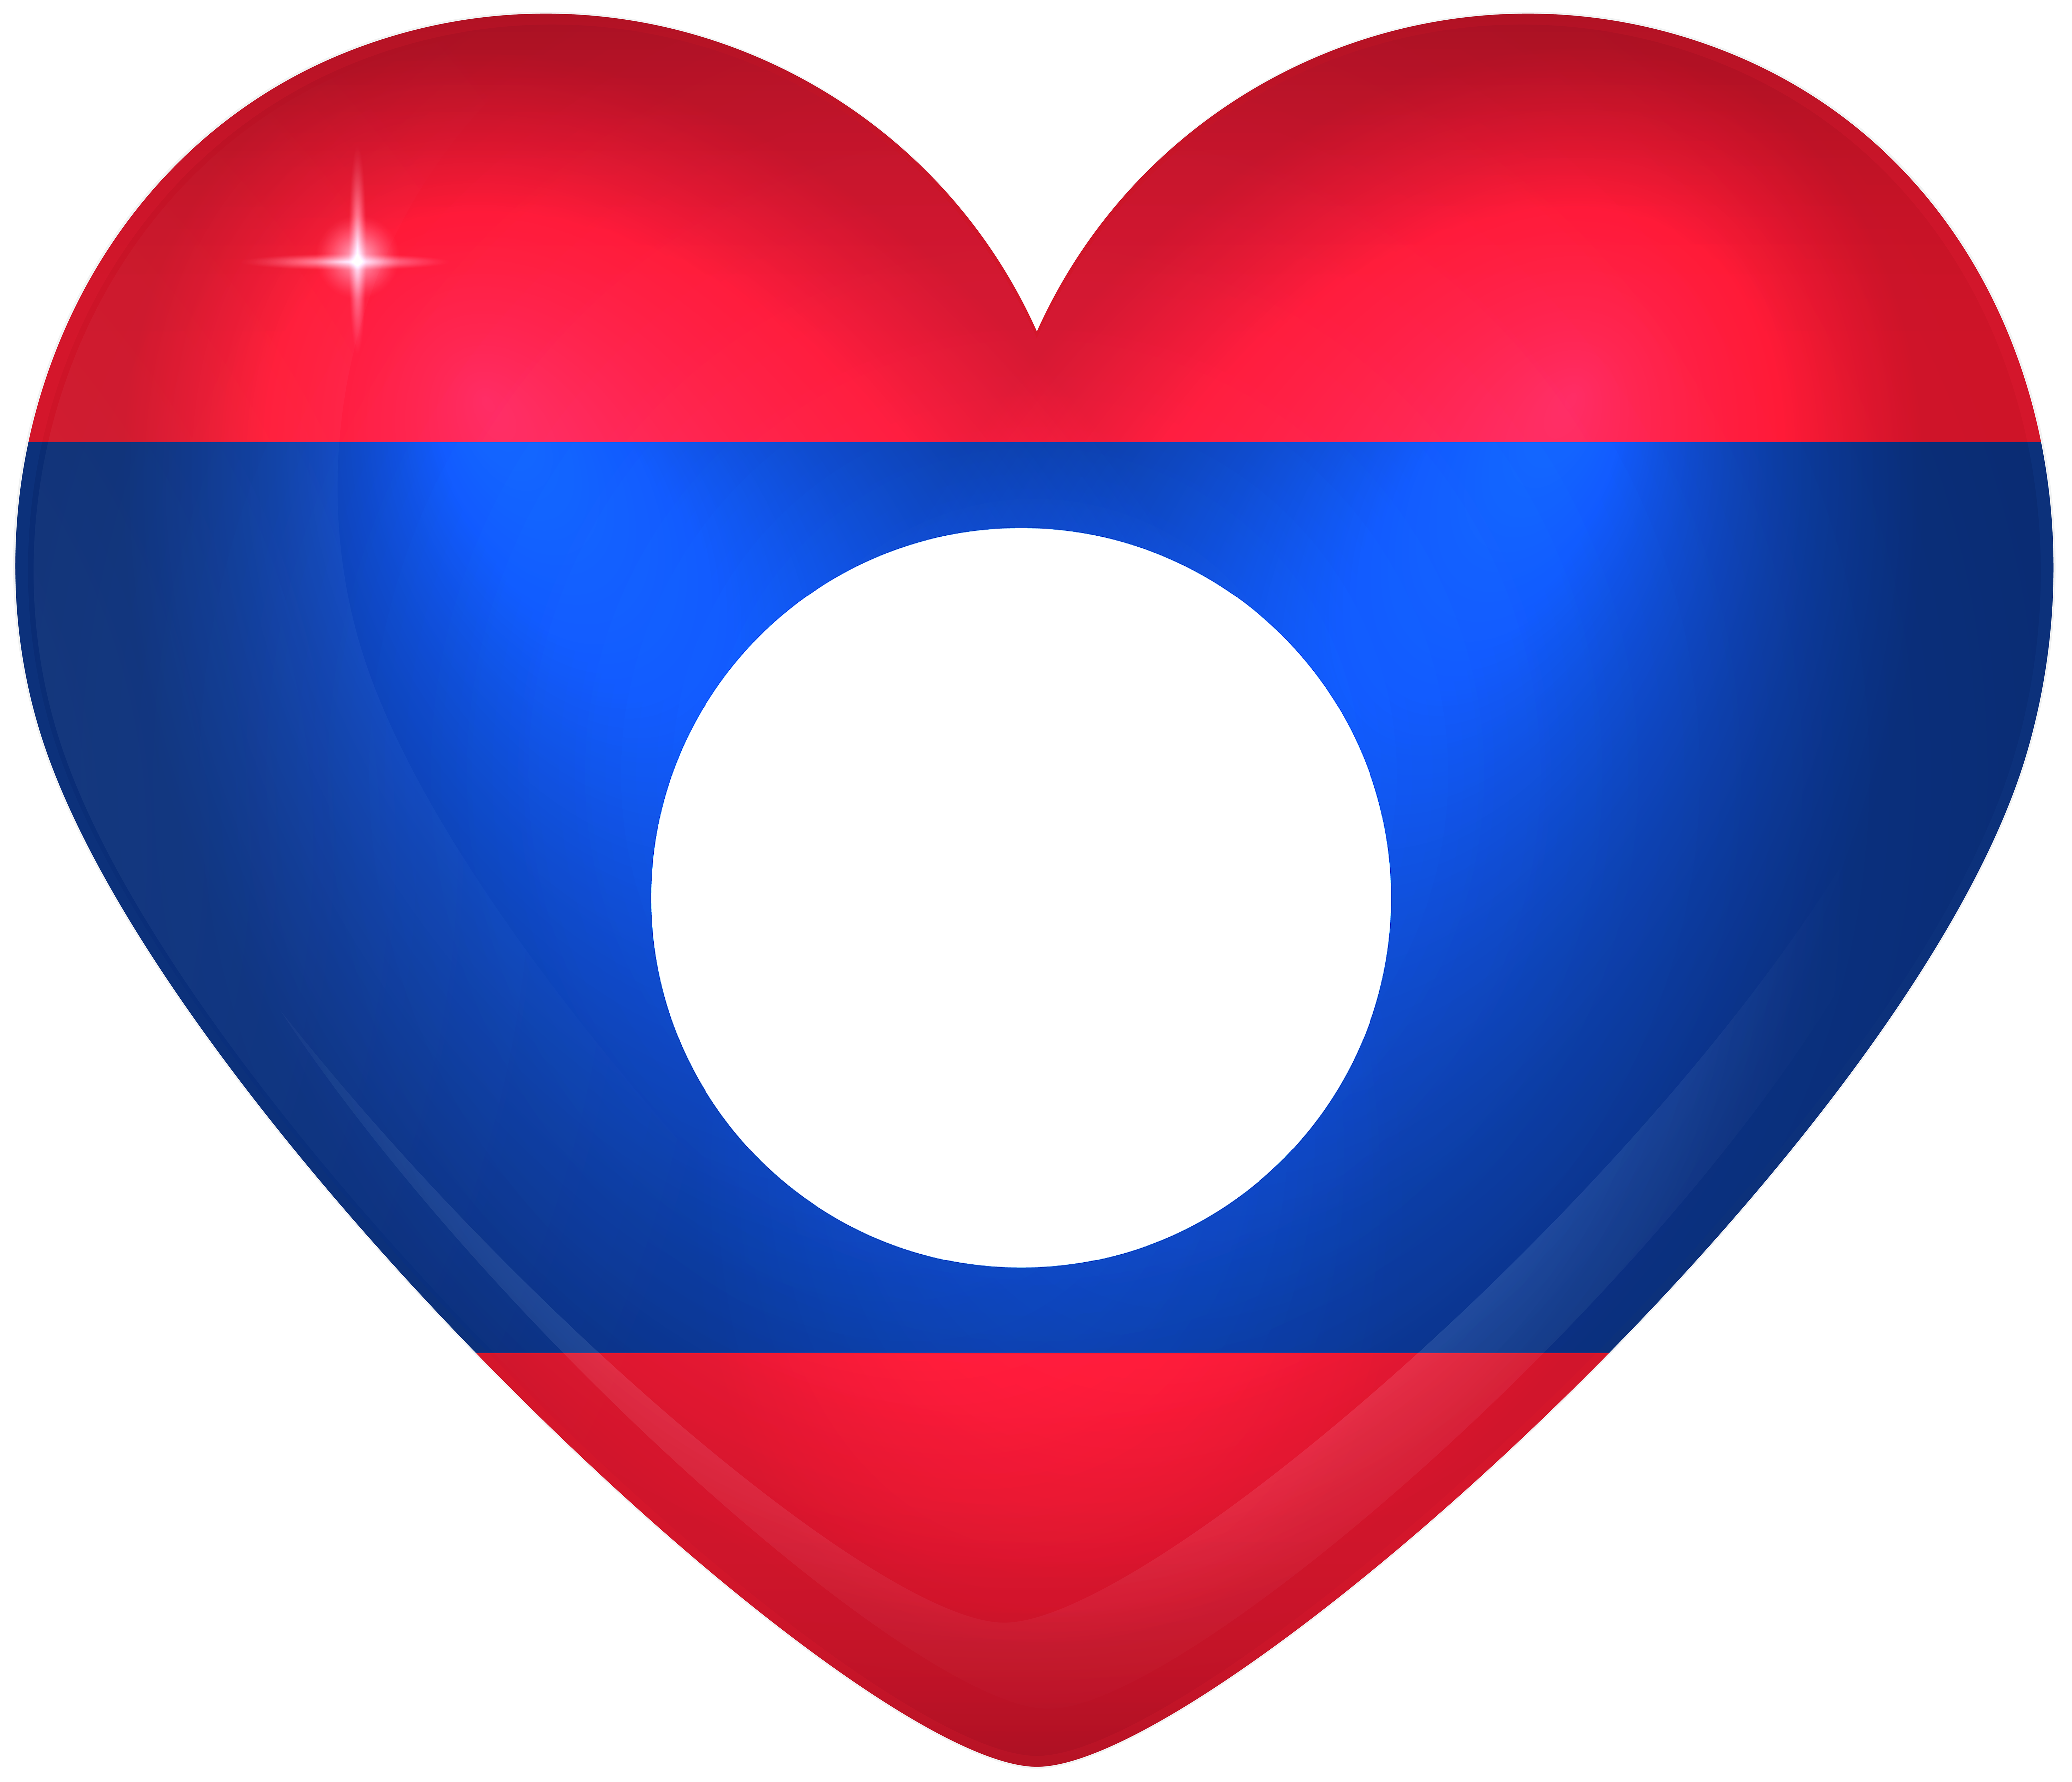 Laos flag png. Large heart gallery yopriceville